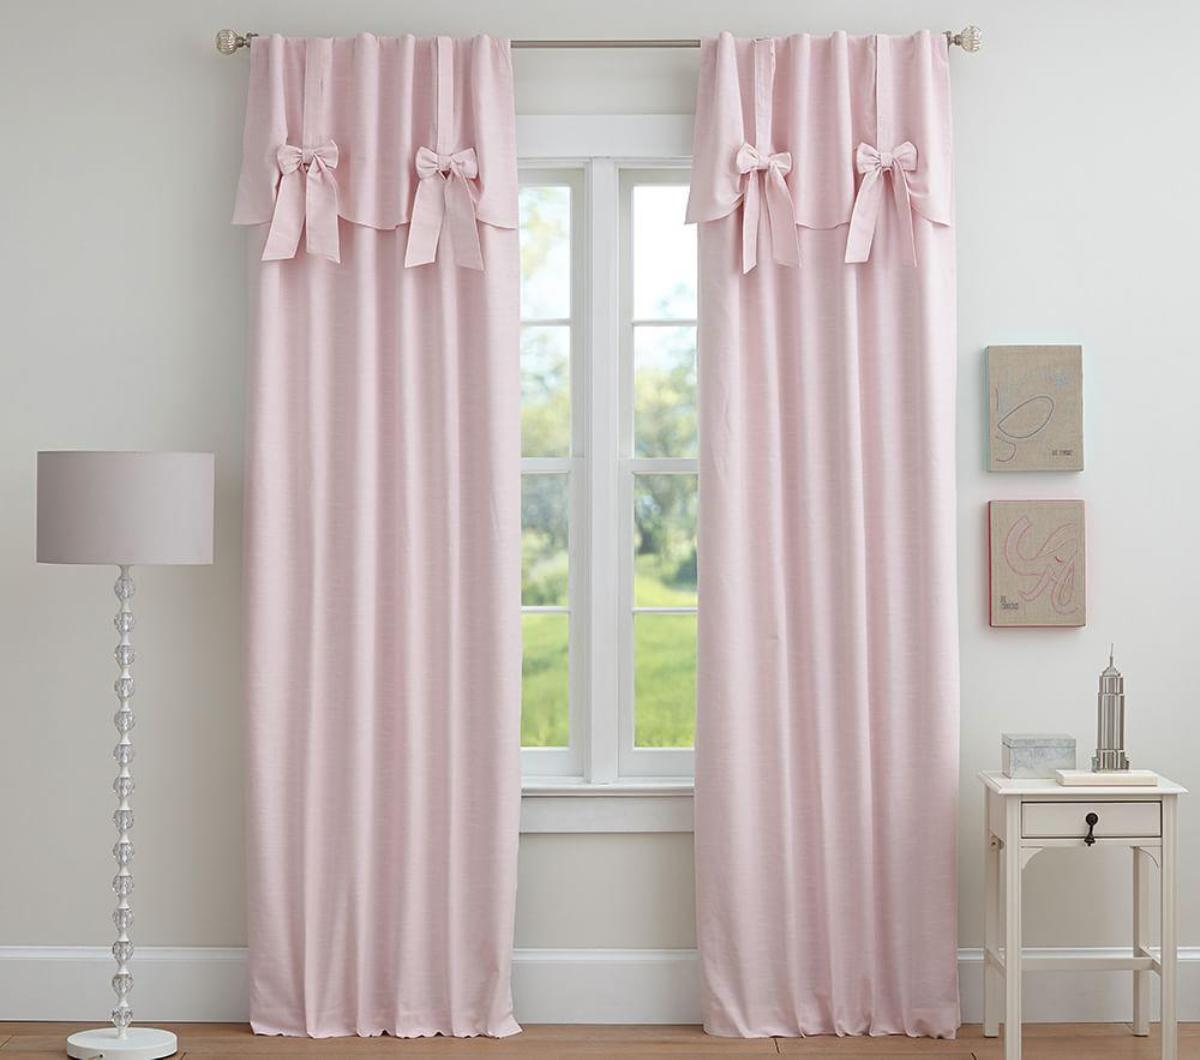 Pottery Barn Kids Valance